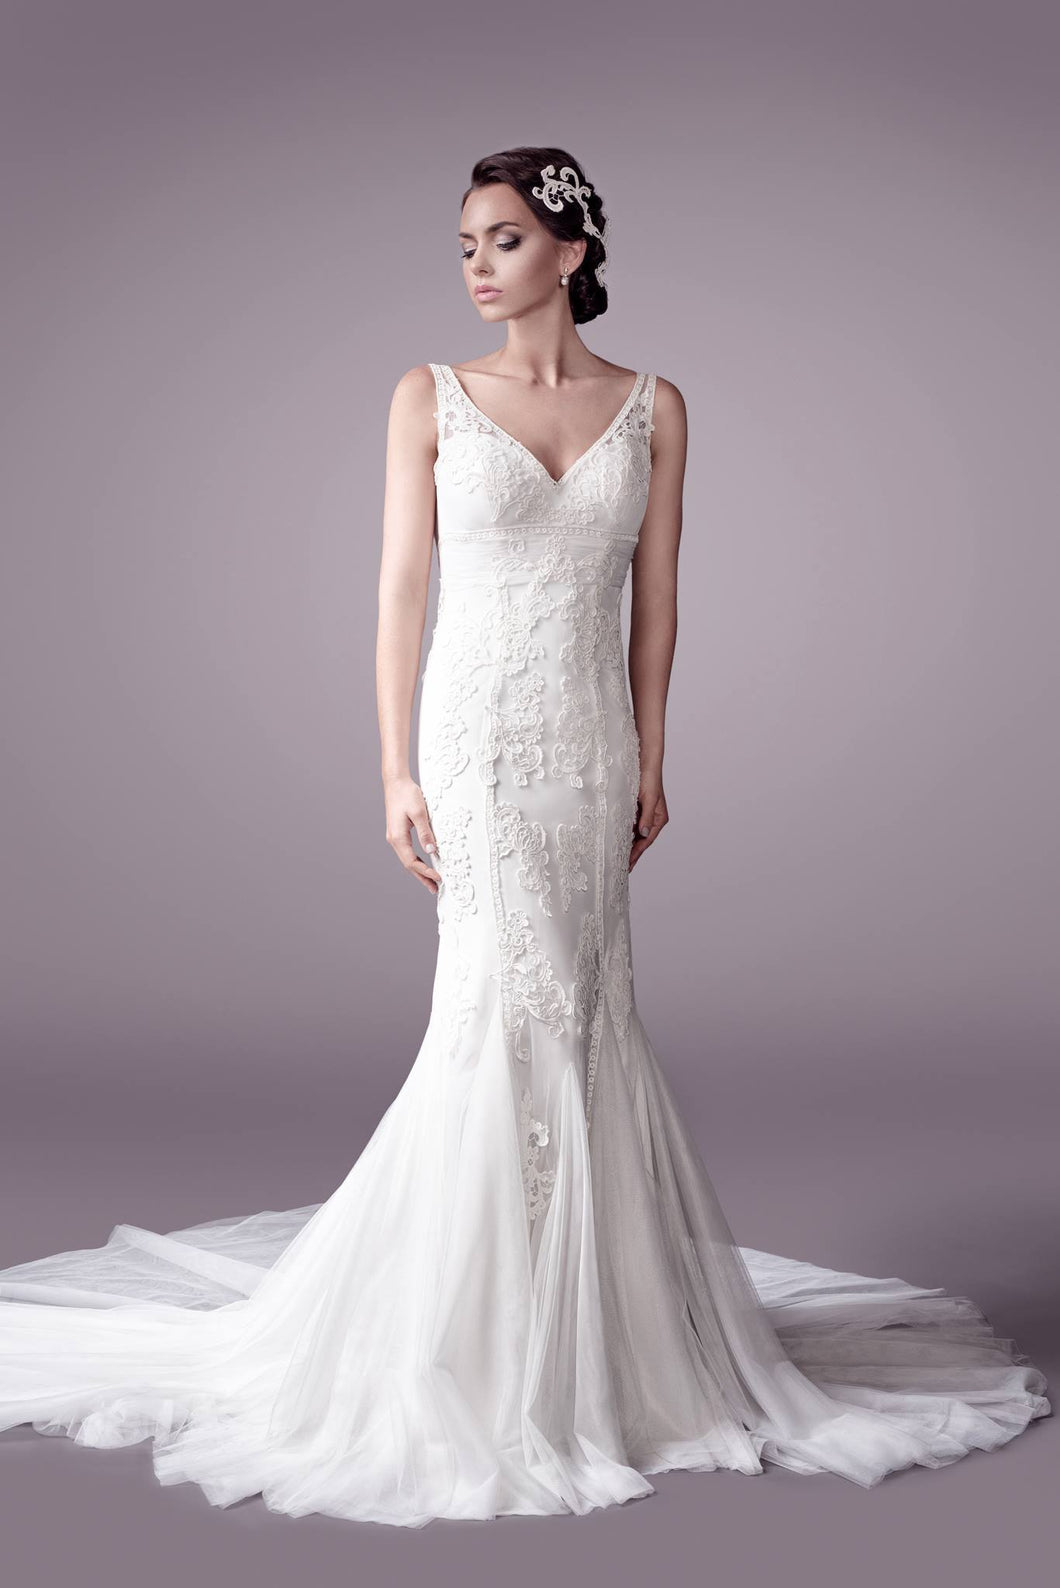 Shania wedding dress bridal gown Perth 9304 F